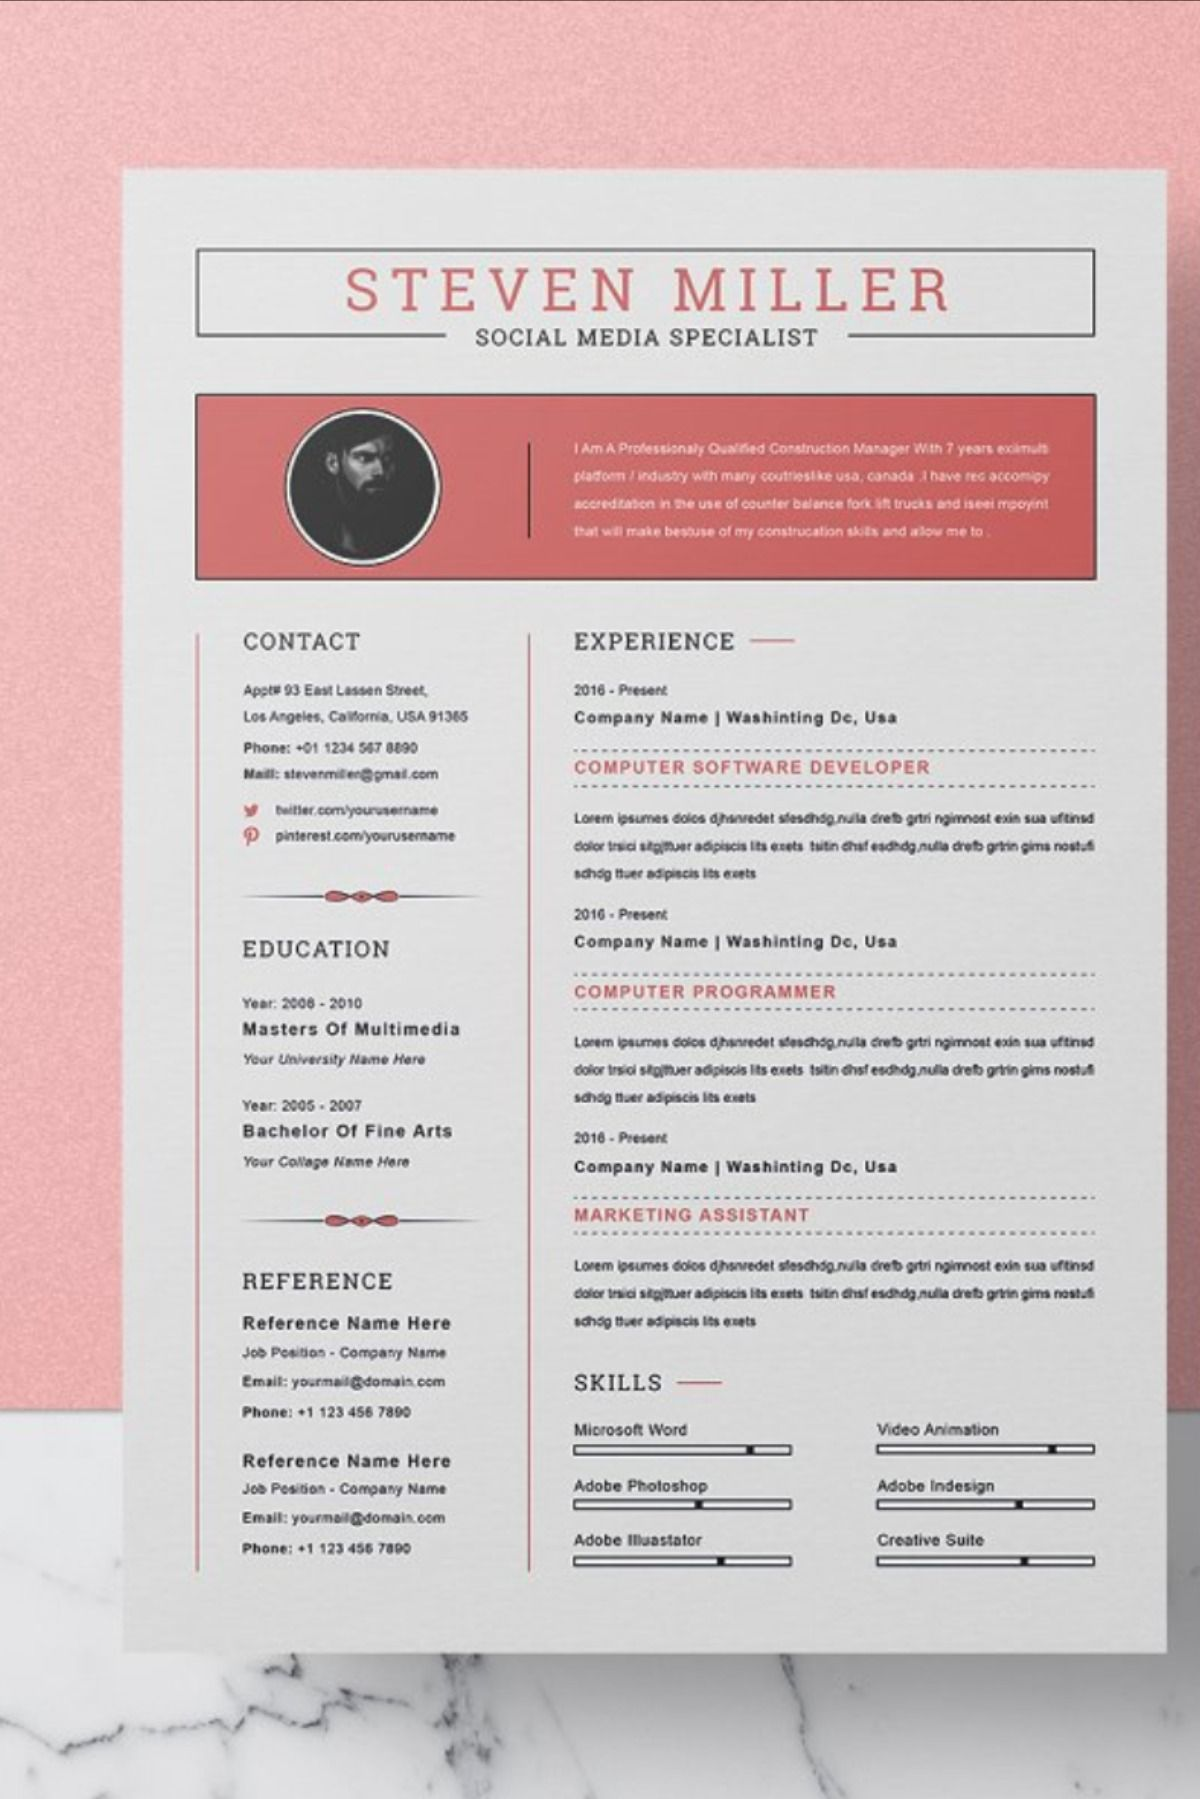 Resume Template / CV in 2020 Resume words, Resume